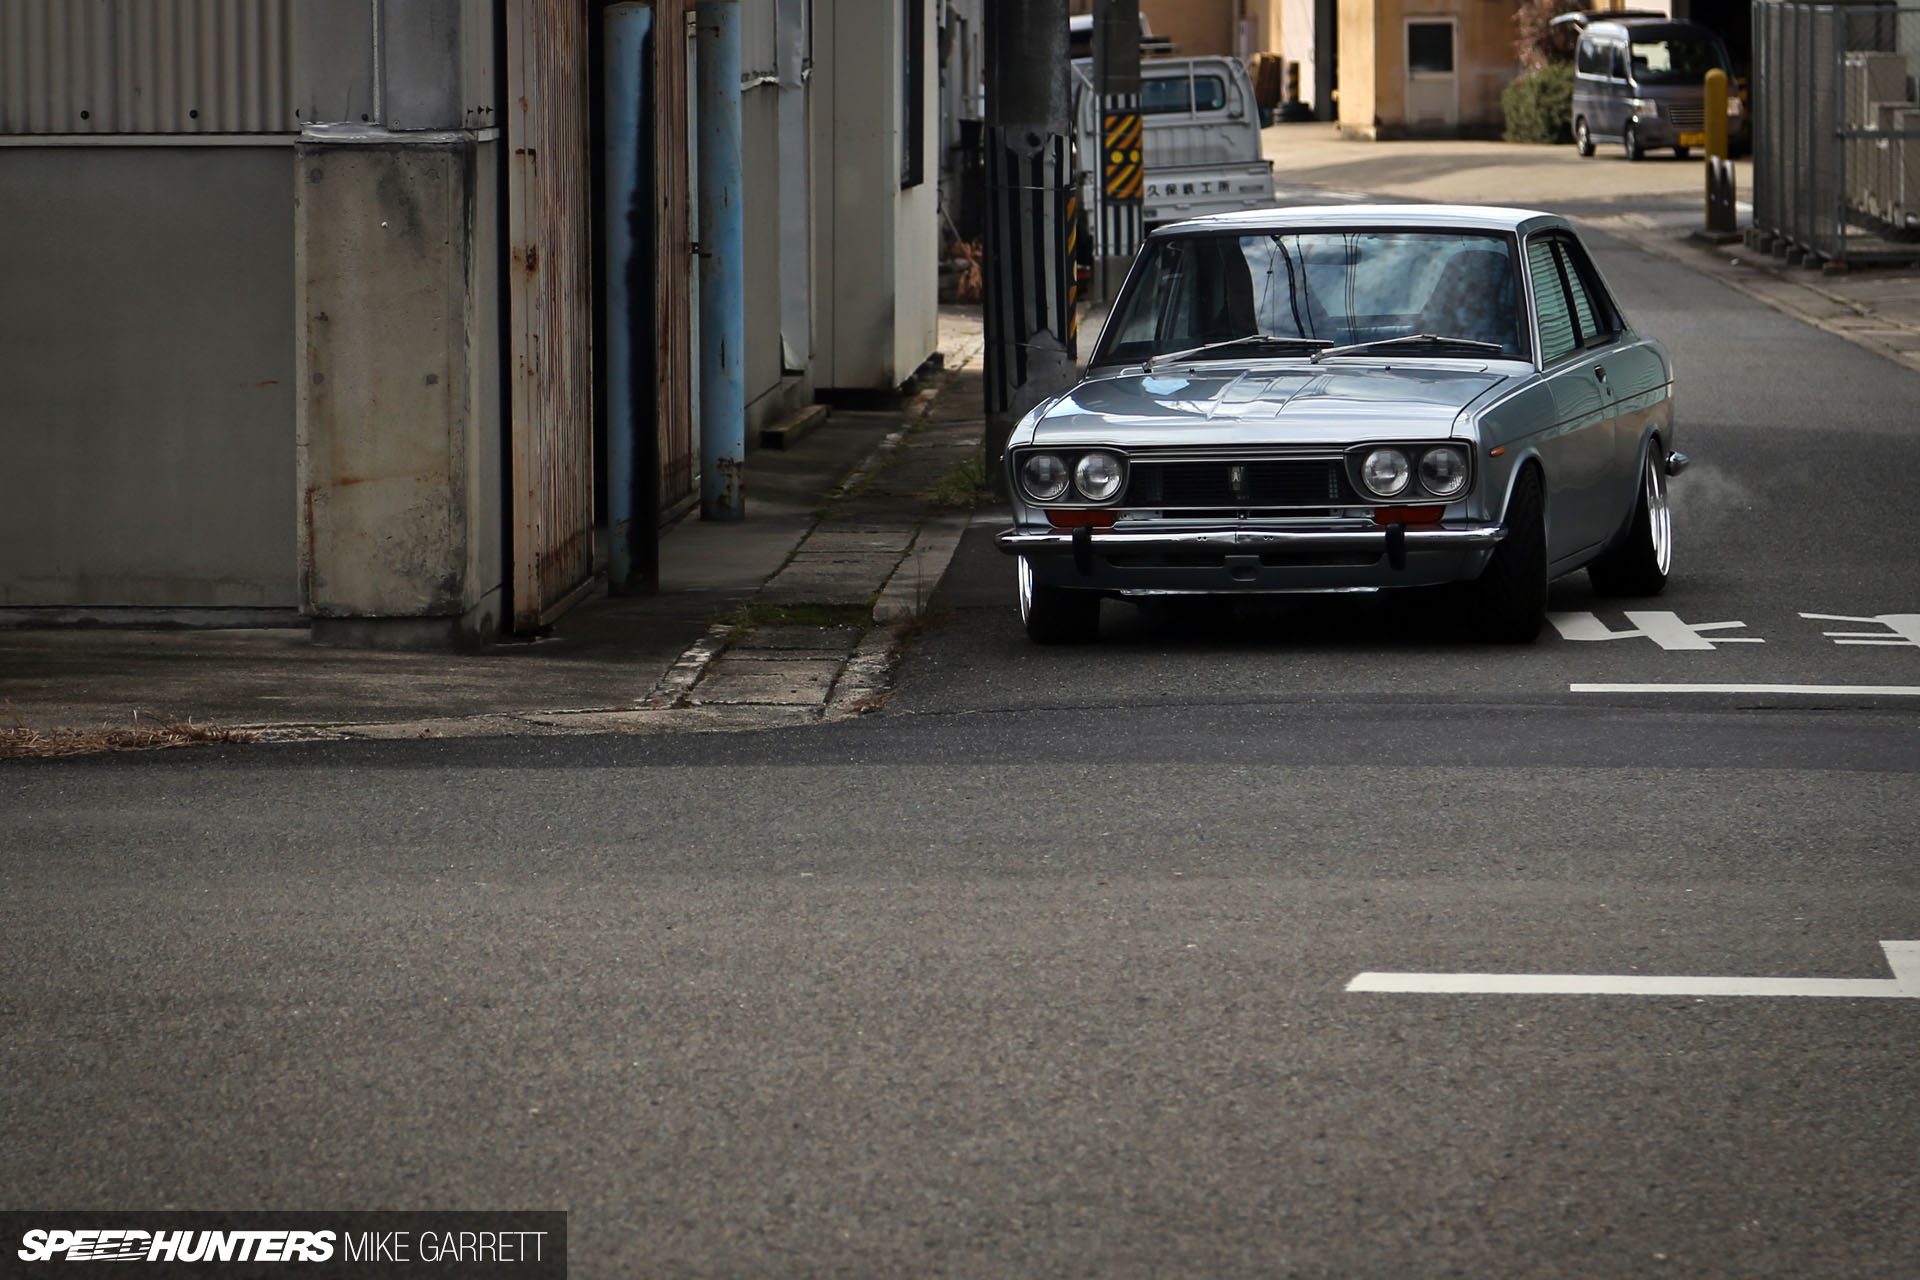 Pro Touring The Jdm Way Speedhunters